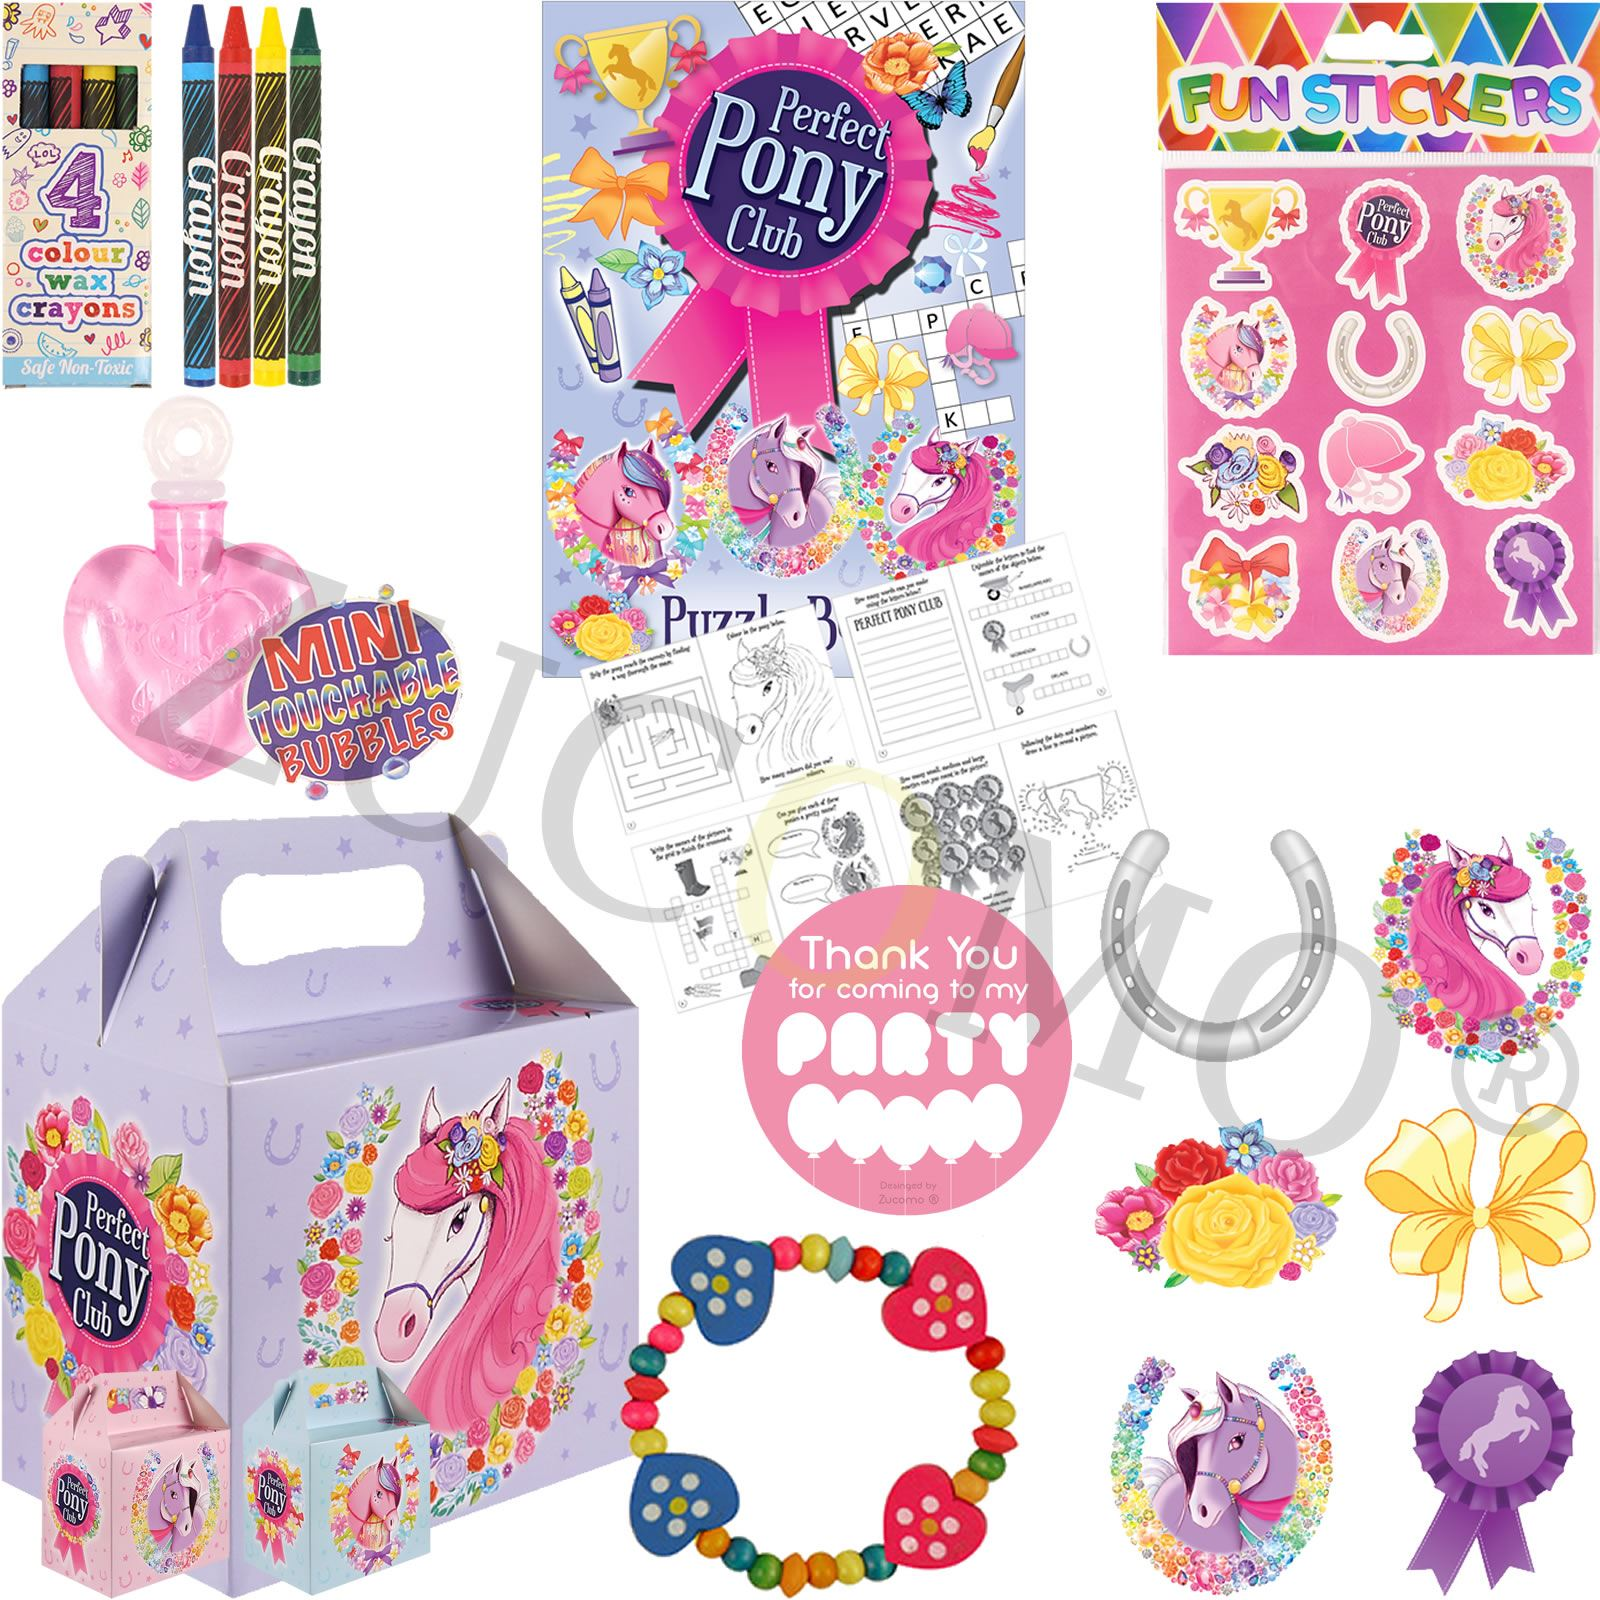 Boys Girls Party Gift Bags Childrens Birthday Loot Party Bag Fillers